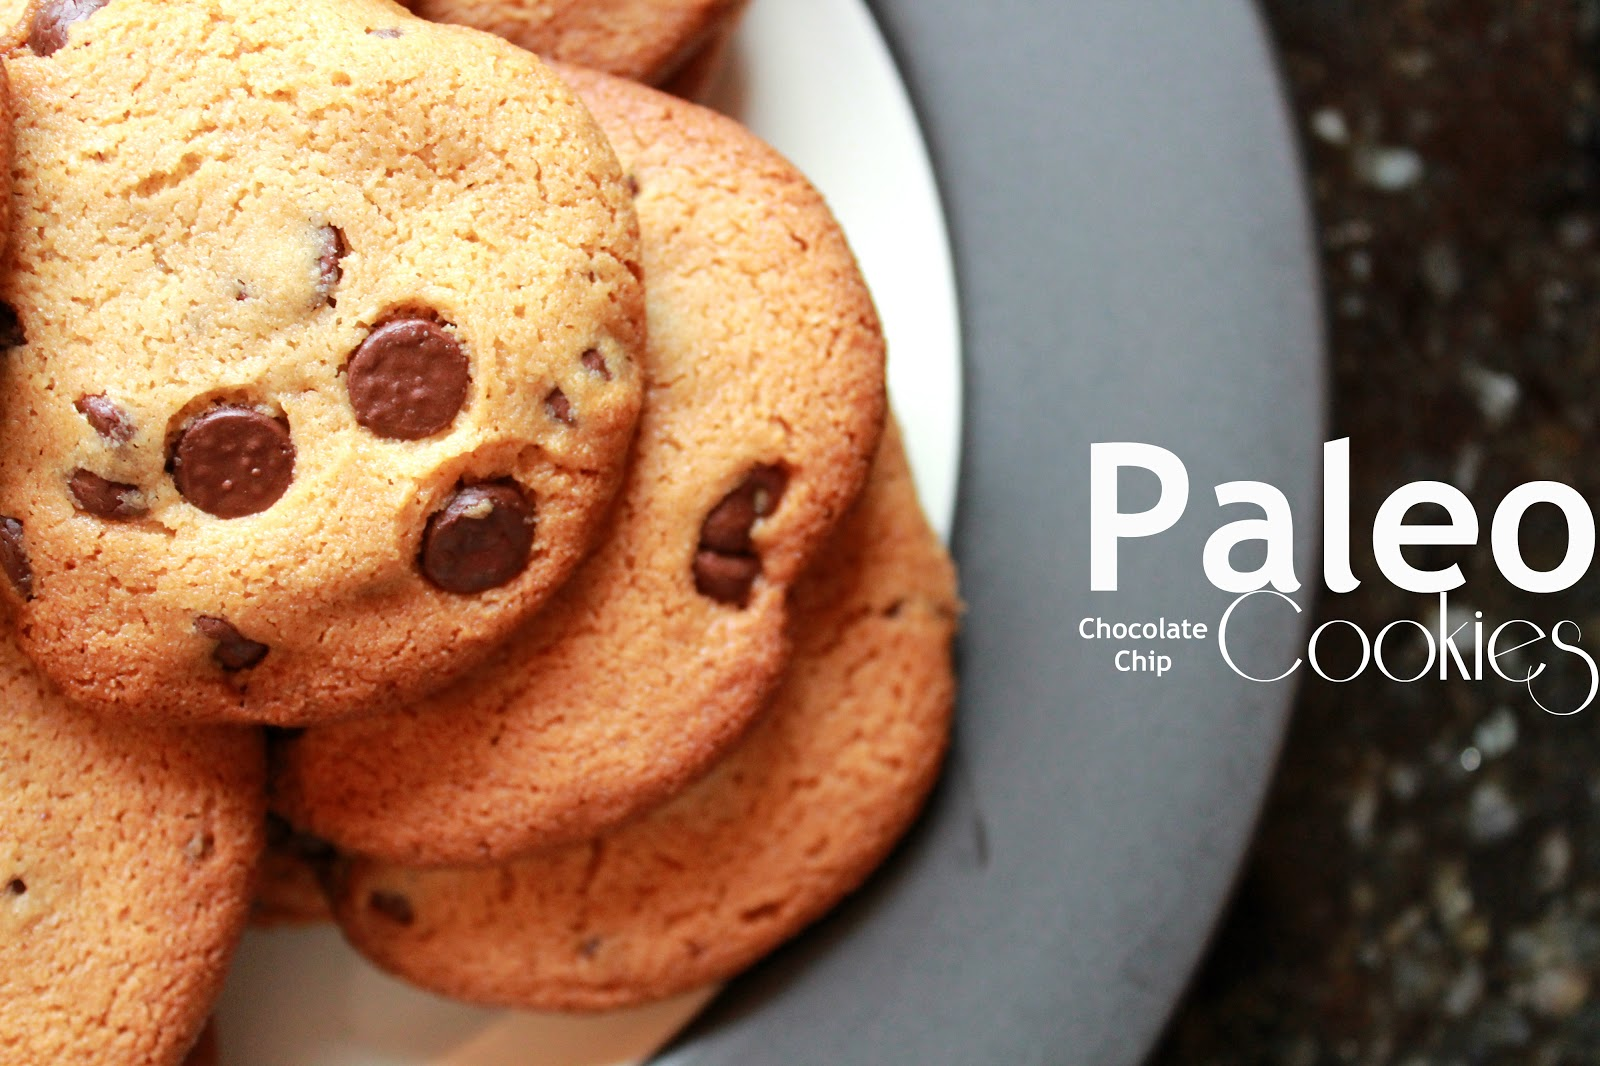 Taking Notes...Coast to Coast: Paleo Chocolate Chip Cookies